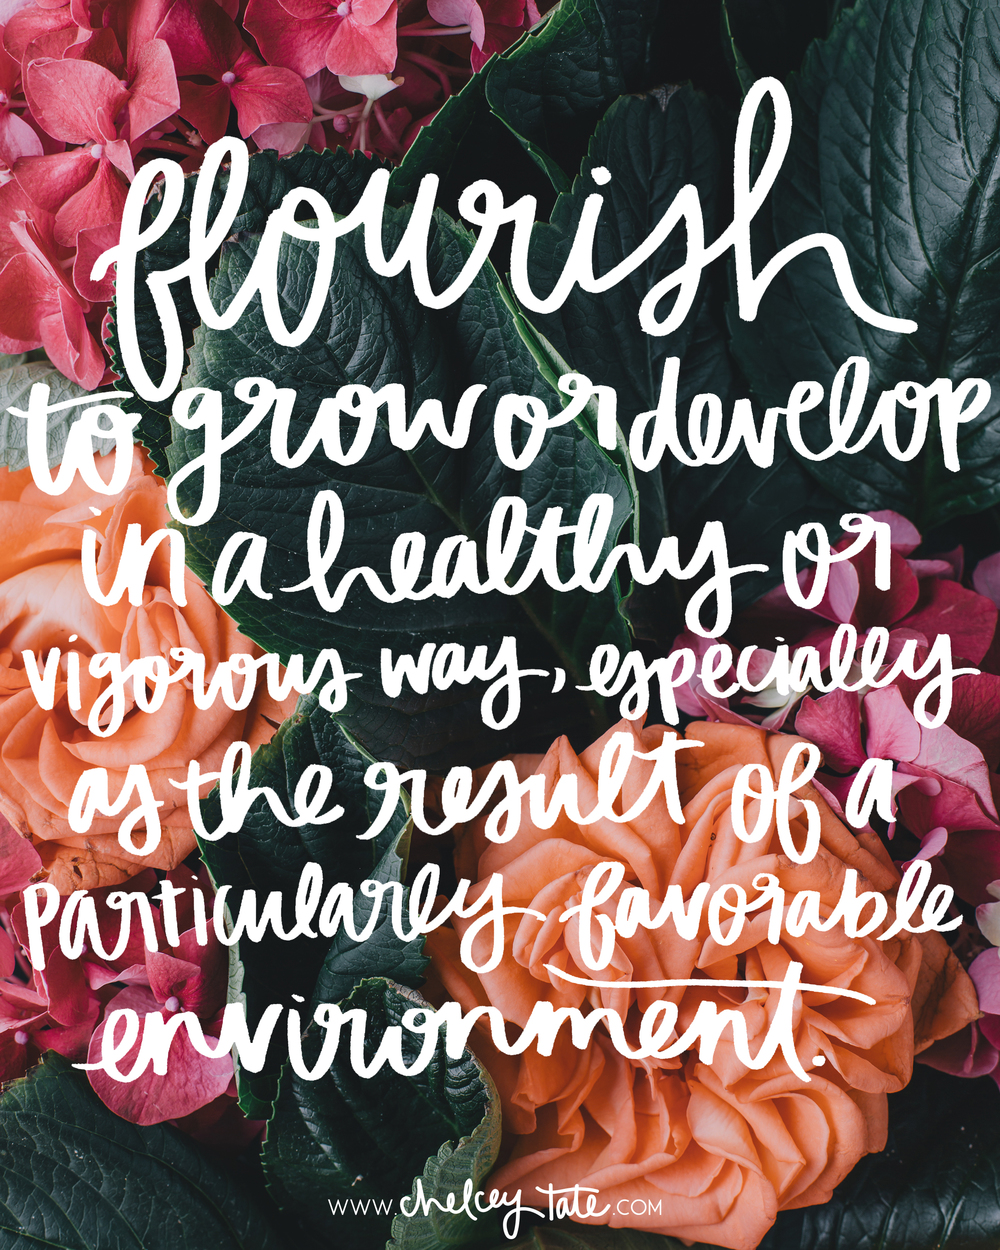 Definition of Flourish / Lettering by www.chelceytate.com